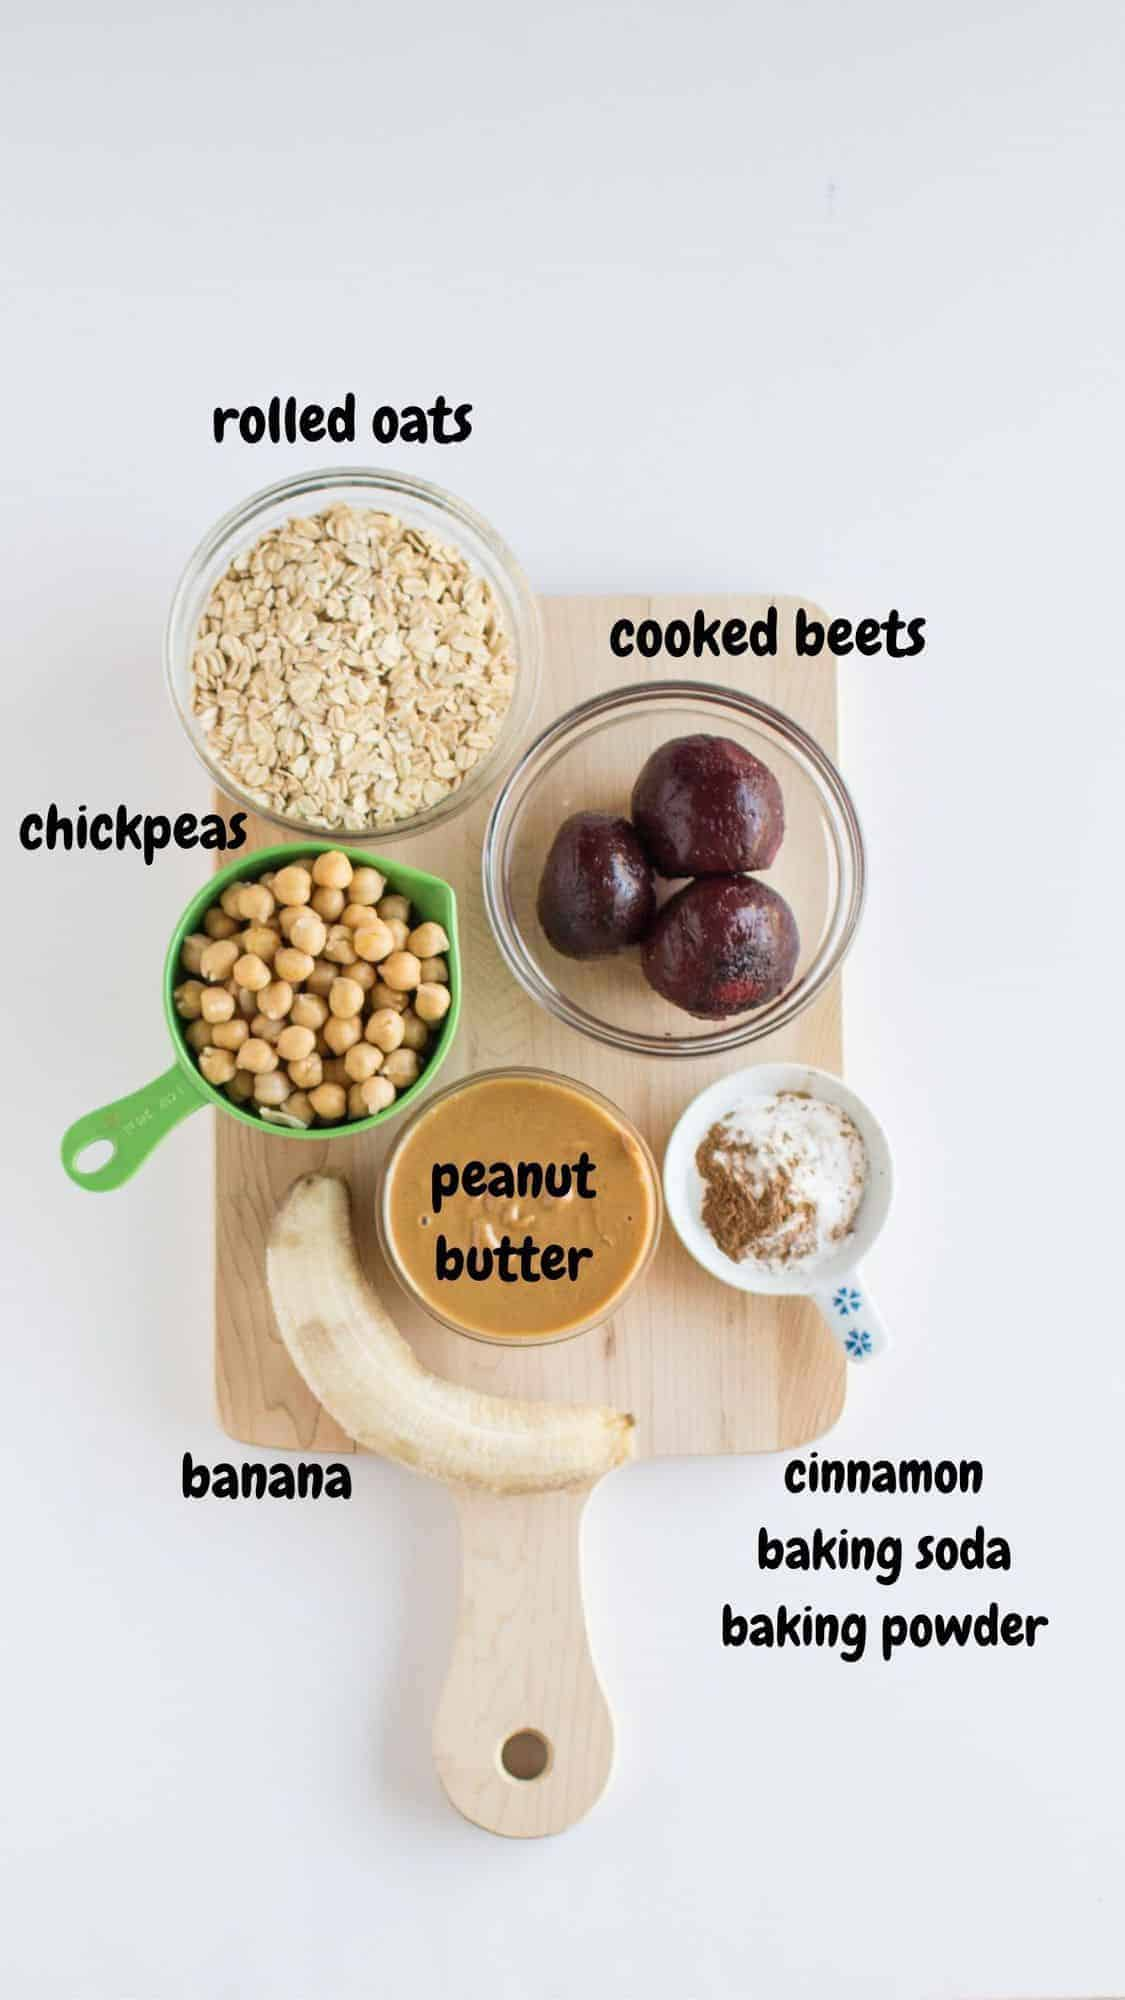 oats, beets, chickpeas, peanut butter, banana, cinnamon, on a wooden board